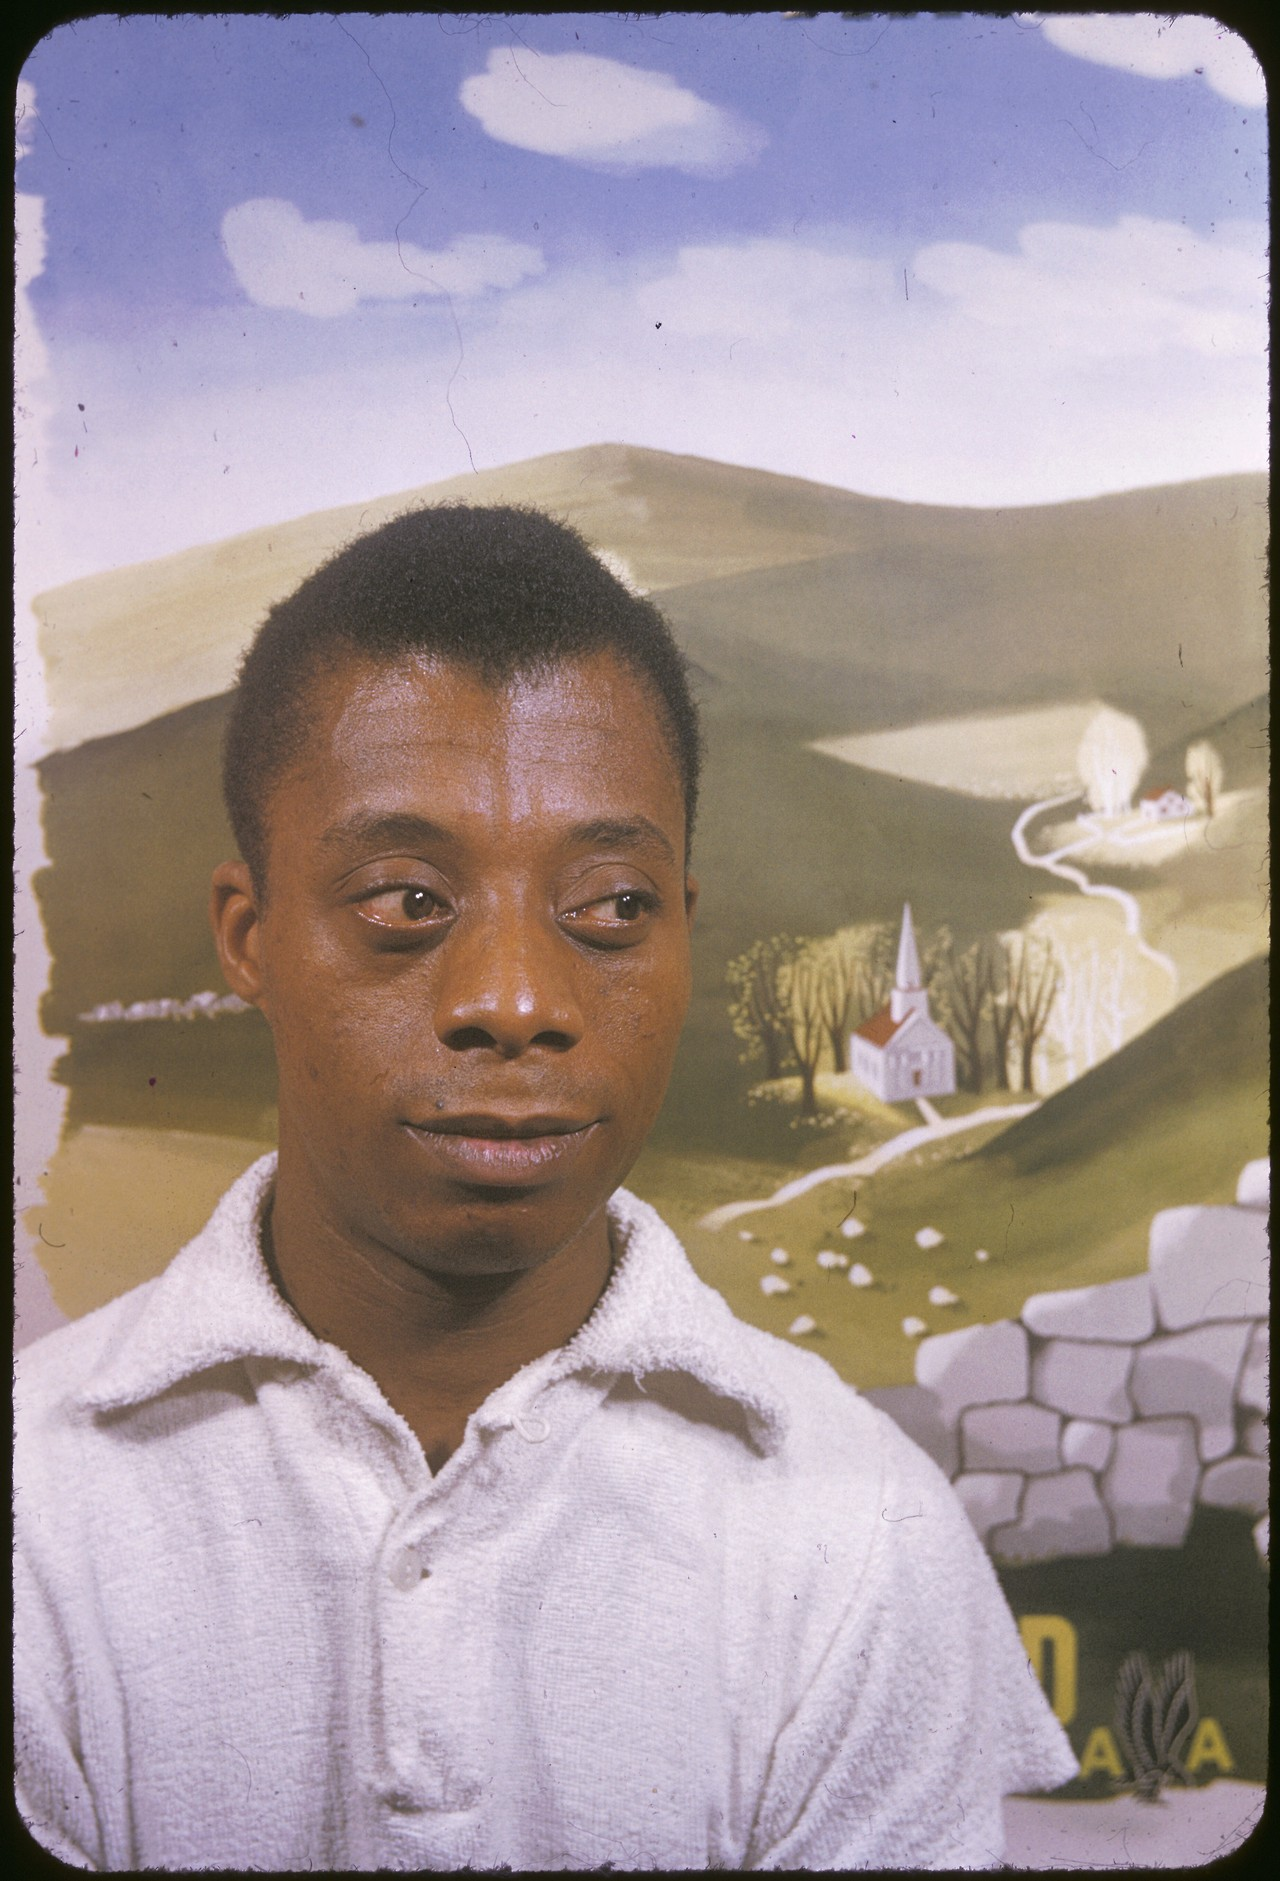 happy birthday james baldwin waldina